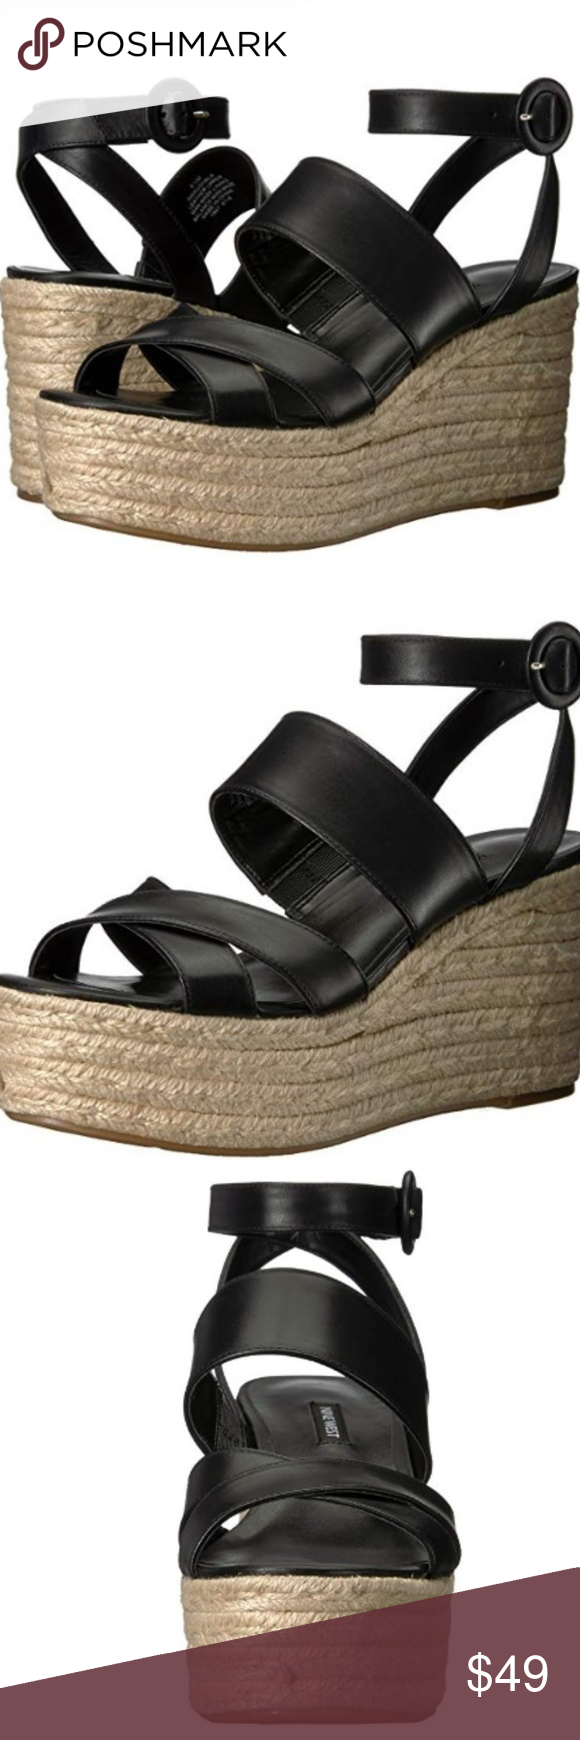 9710cb7cf01 Nine West Kushala Leather Wedge Sandals Size 6.5M Leather New in box Size  6.5M Synthetic sole Platform measures approximately 2 inches Wedge Sandal  Women s ...